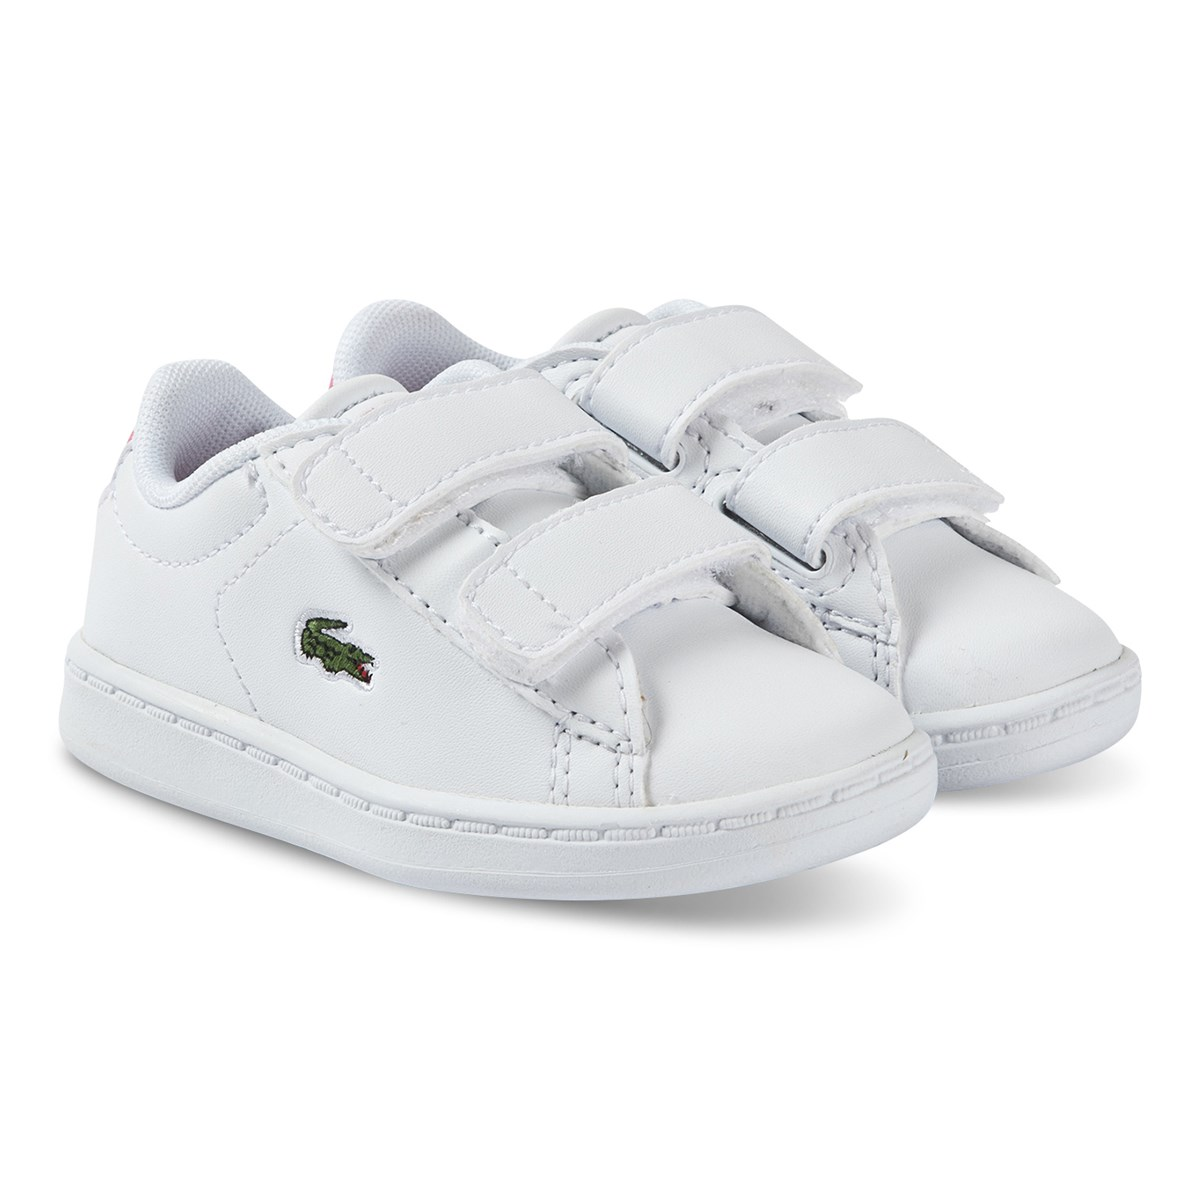 Lacoste - Carnaby Velcro Sneakers White